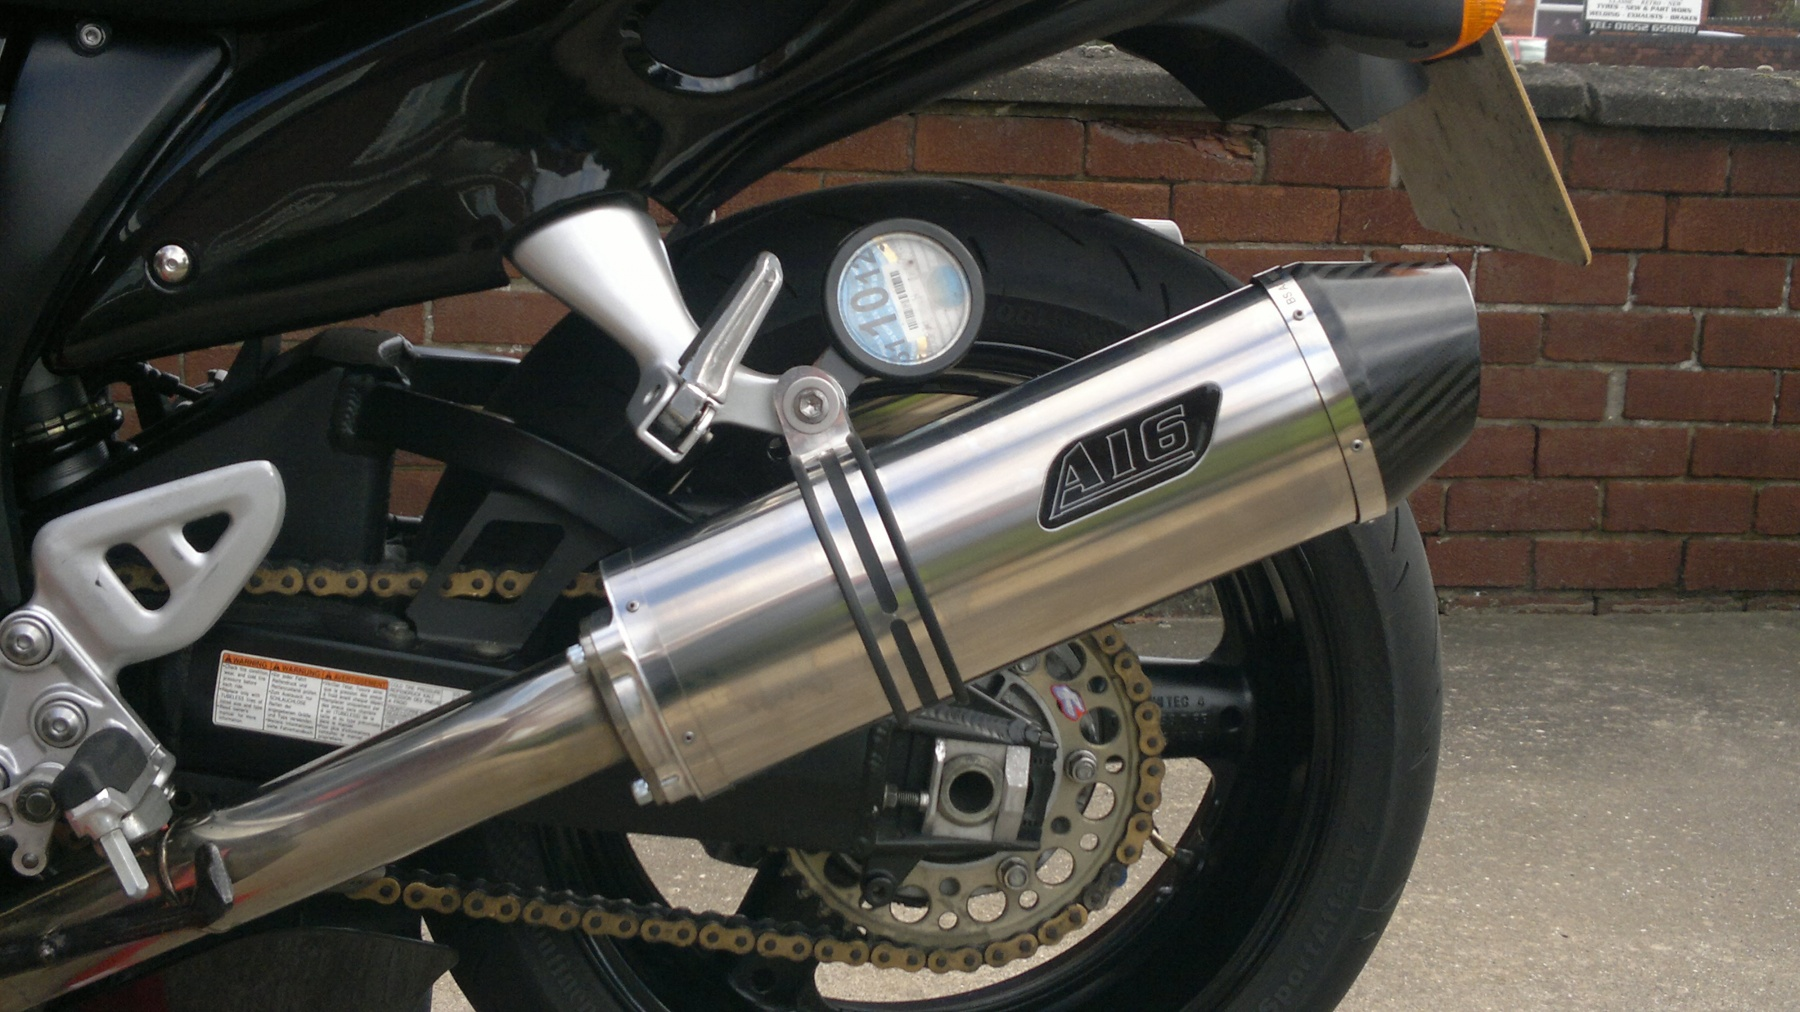 """Suzuki GSX1300 Hayabusa 1999-2007<p>A16 Road Legal Stainless Exhaust with Carbon Cap Outlet</p><br/><a href=""""https://a16roadnracesupplies.co.uk/product/a16-suzuki-exhausts/"""">Buy now!</a>"""